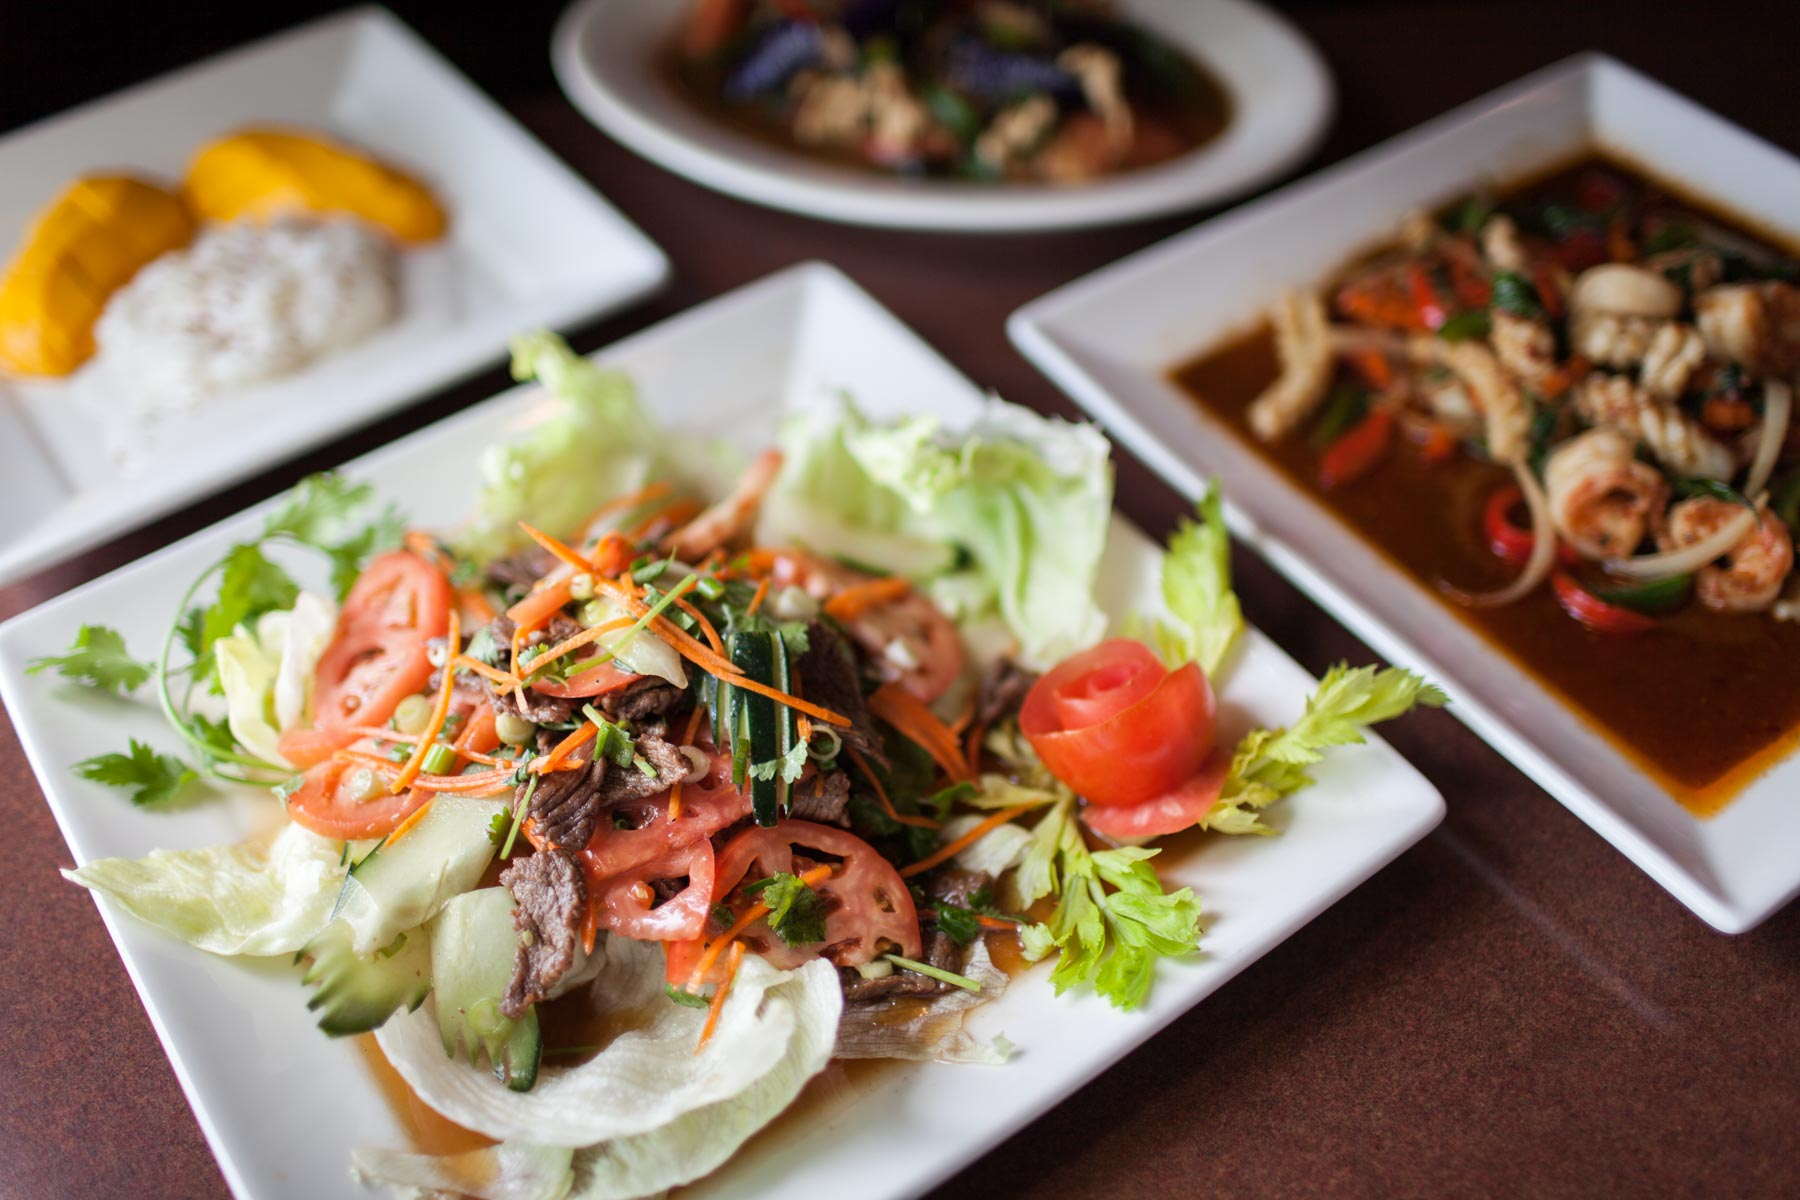 Lanna thai continues to prove its authenticity over the for Asian cuisine tulsa menu